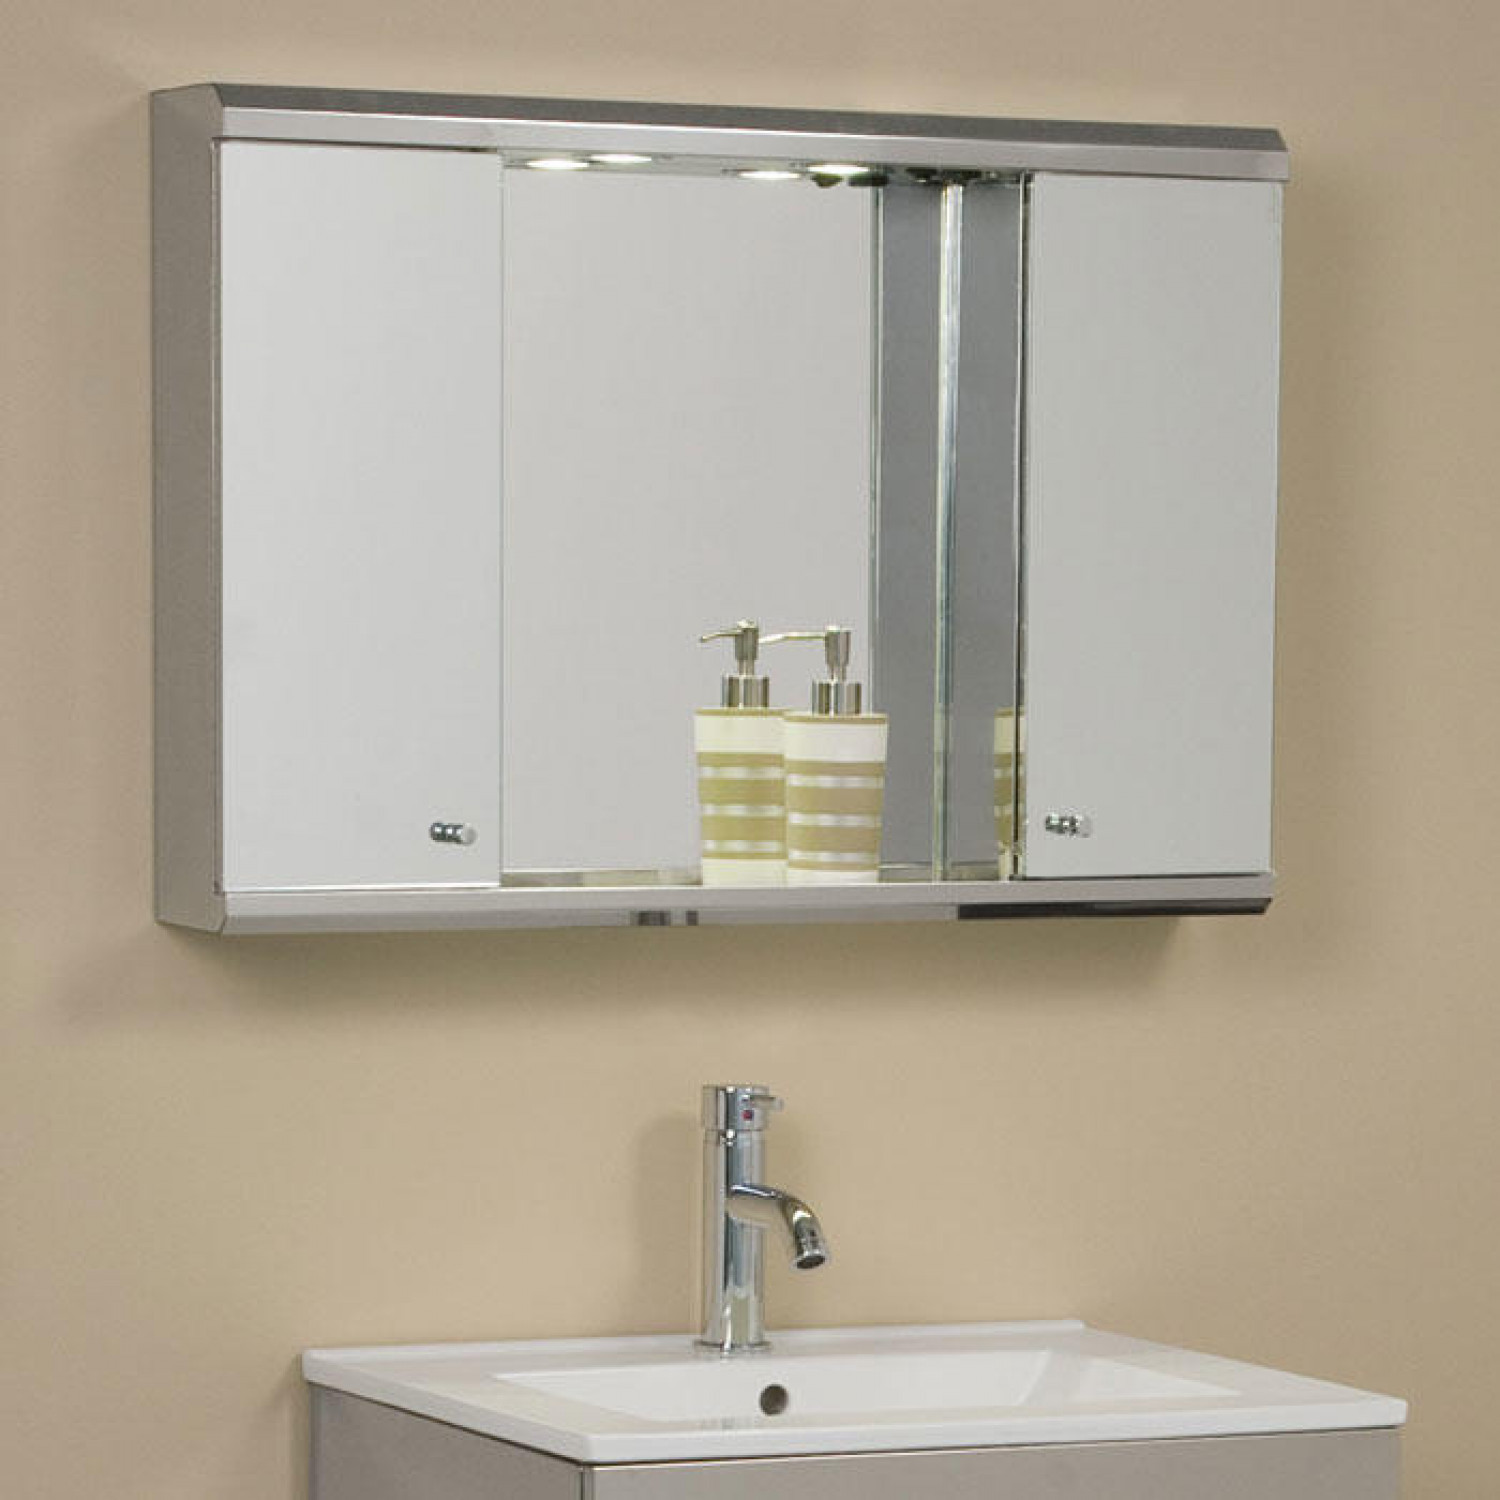 Best ideas about Lighted Medicine Cabinet . Save or Pin Illumine Dual Stainless Steel Medicine Cabinet with Now.